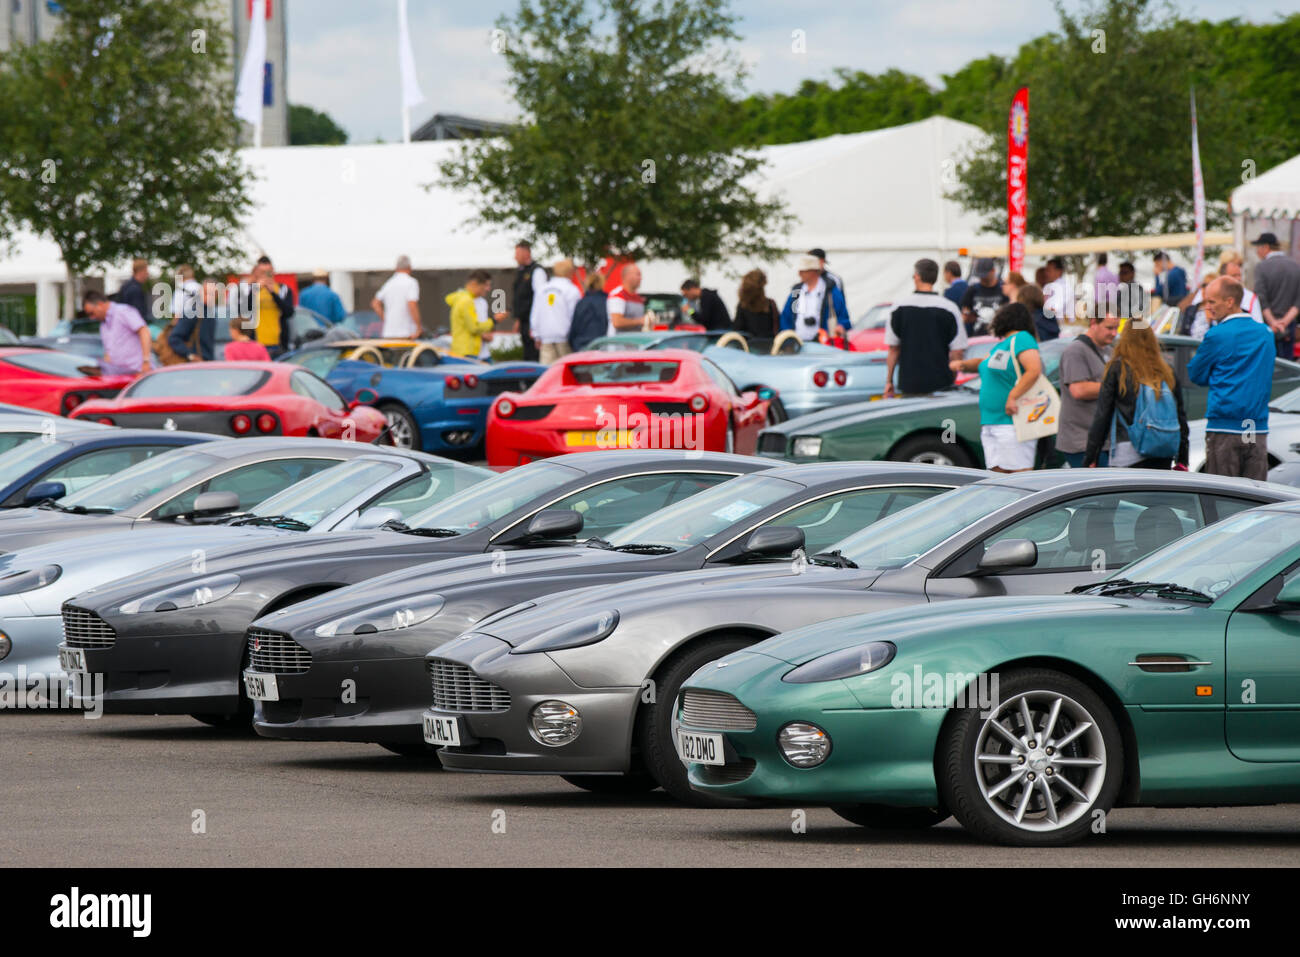 Aston Martin Owners Club High Resolution Stock Photography And Images Alamy